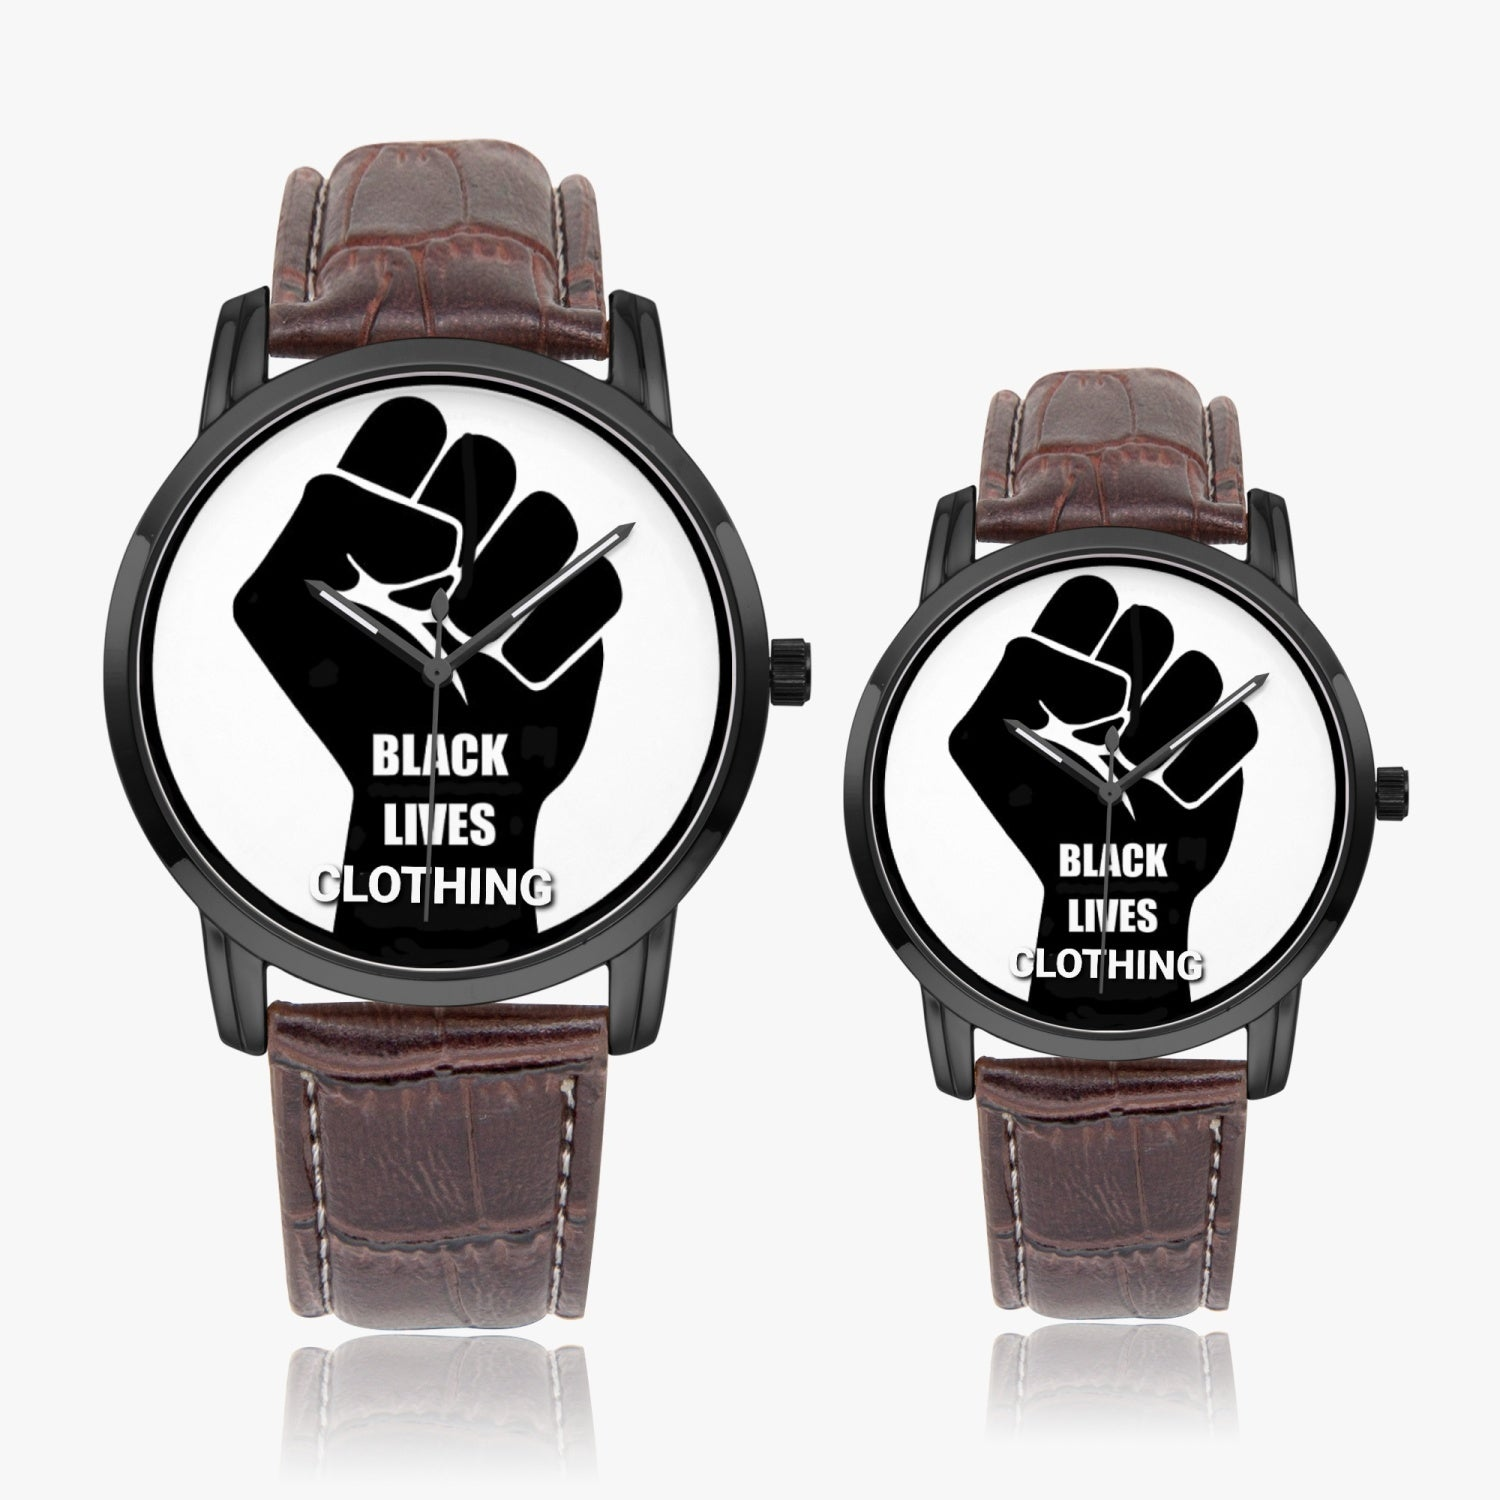 265. Black Lives Clothing Quartz watch - Black Lives Clothing